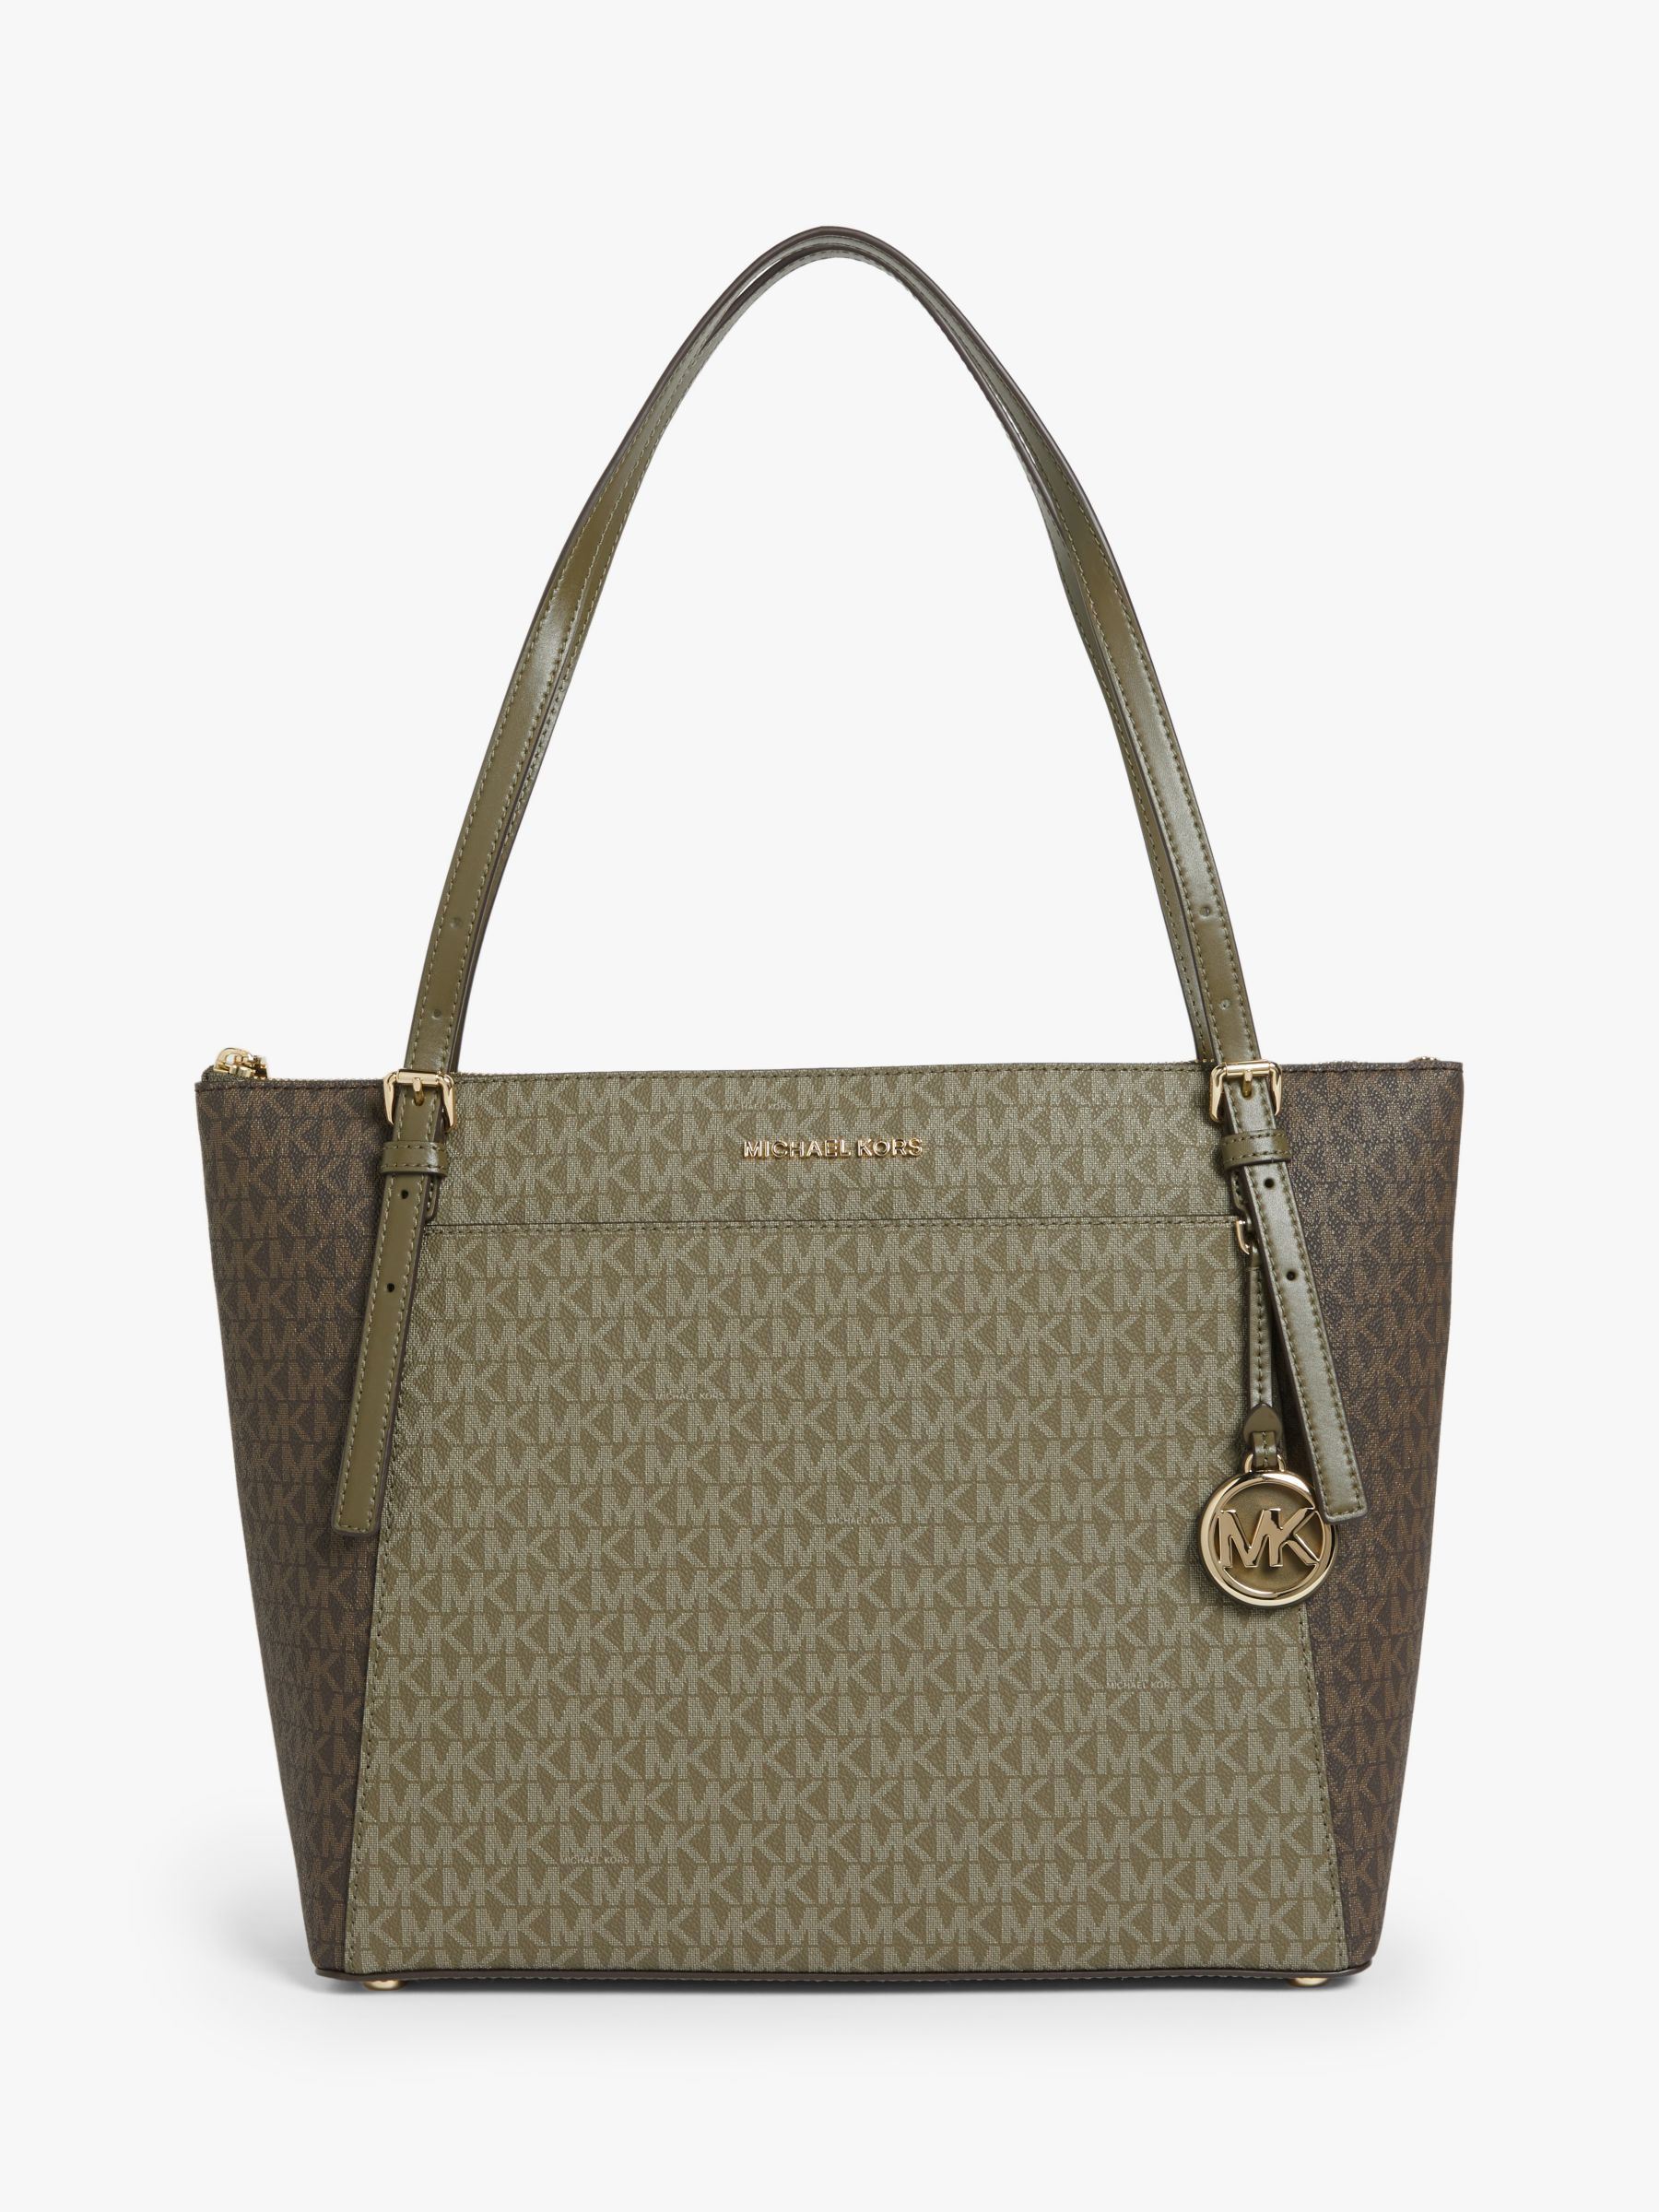 MICHAEL Michael Kors Voyager East West Signature Tote Bag Olive MICHAEL Michael Kors Voyager East West Signature Tote Bag Olive